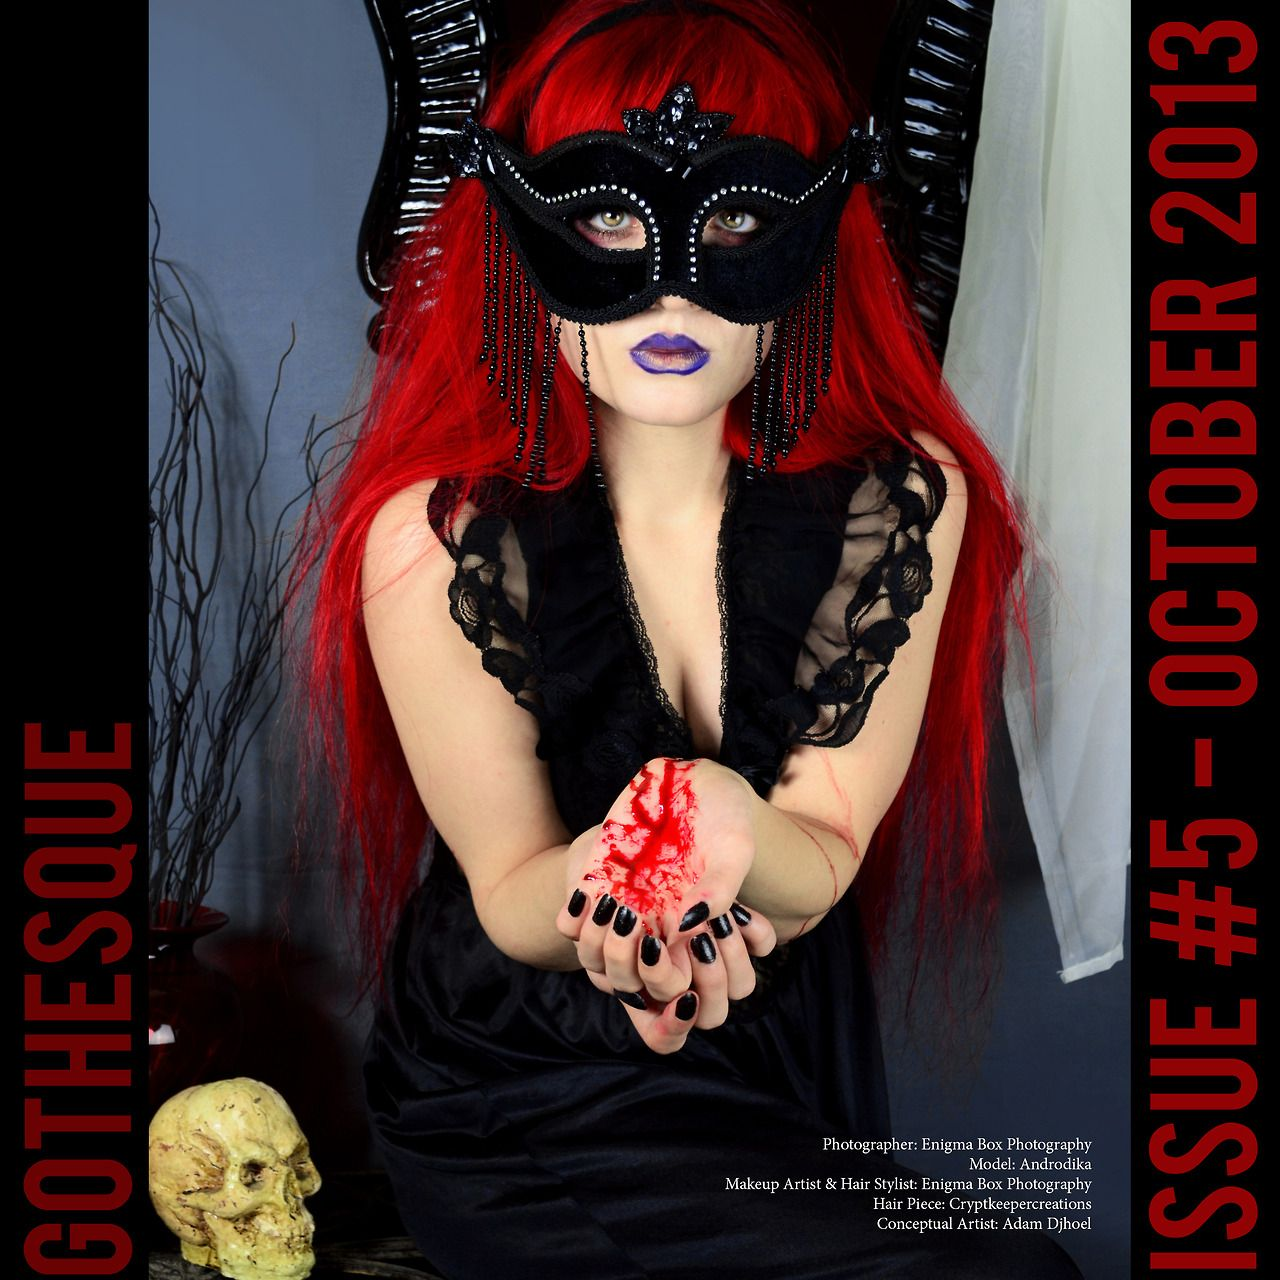 Pin by Gothesque Magazine on 2013 October Issue 5